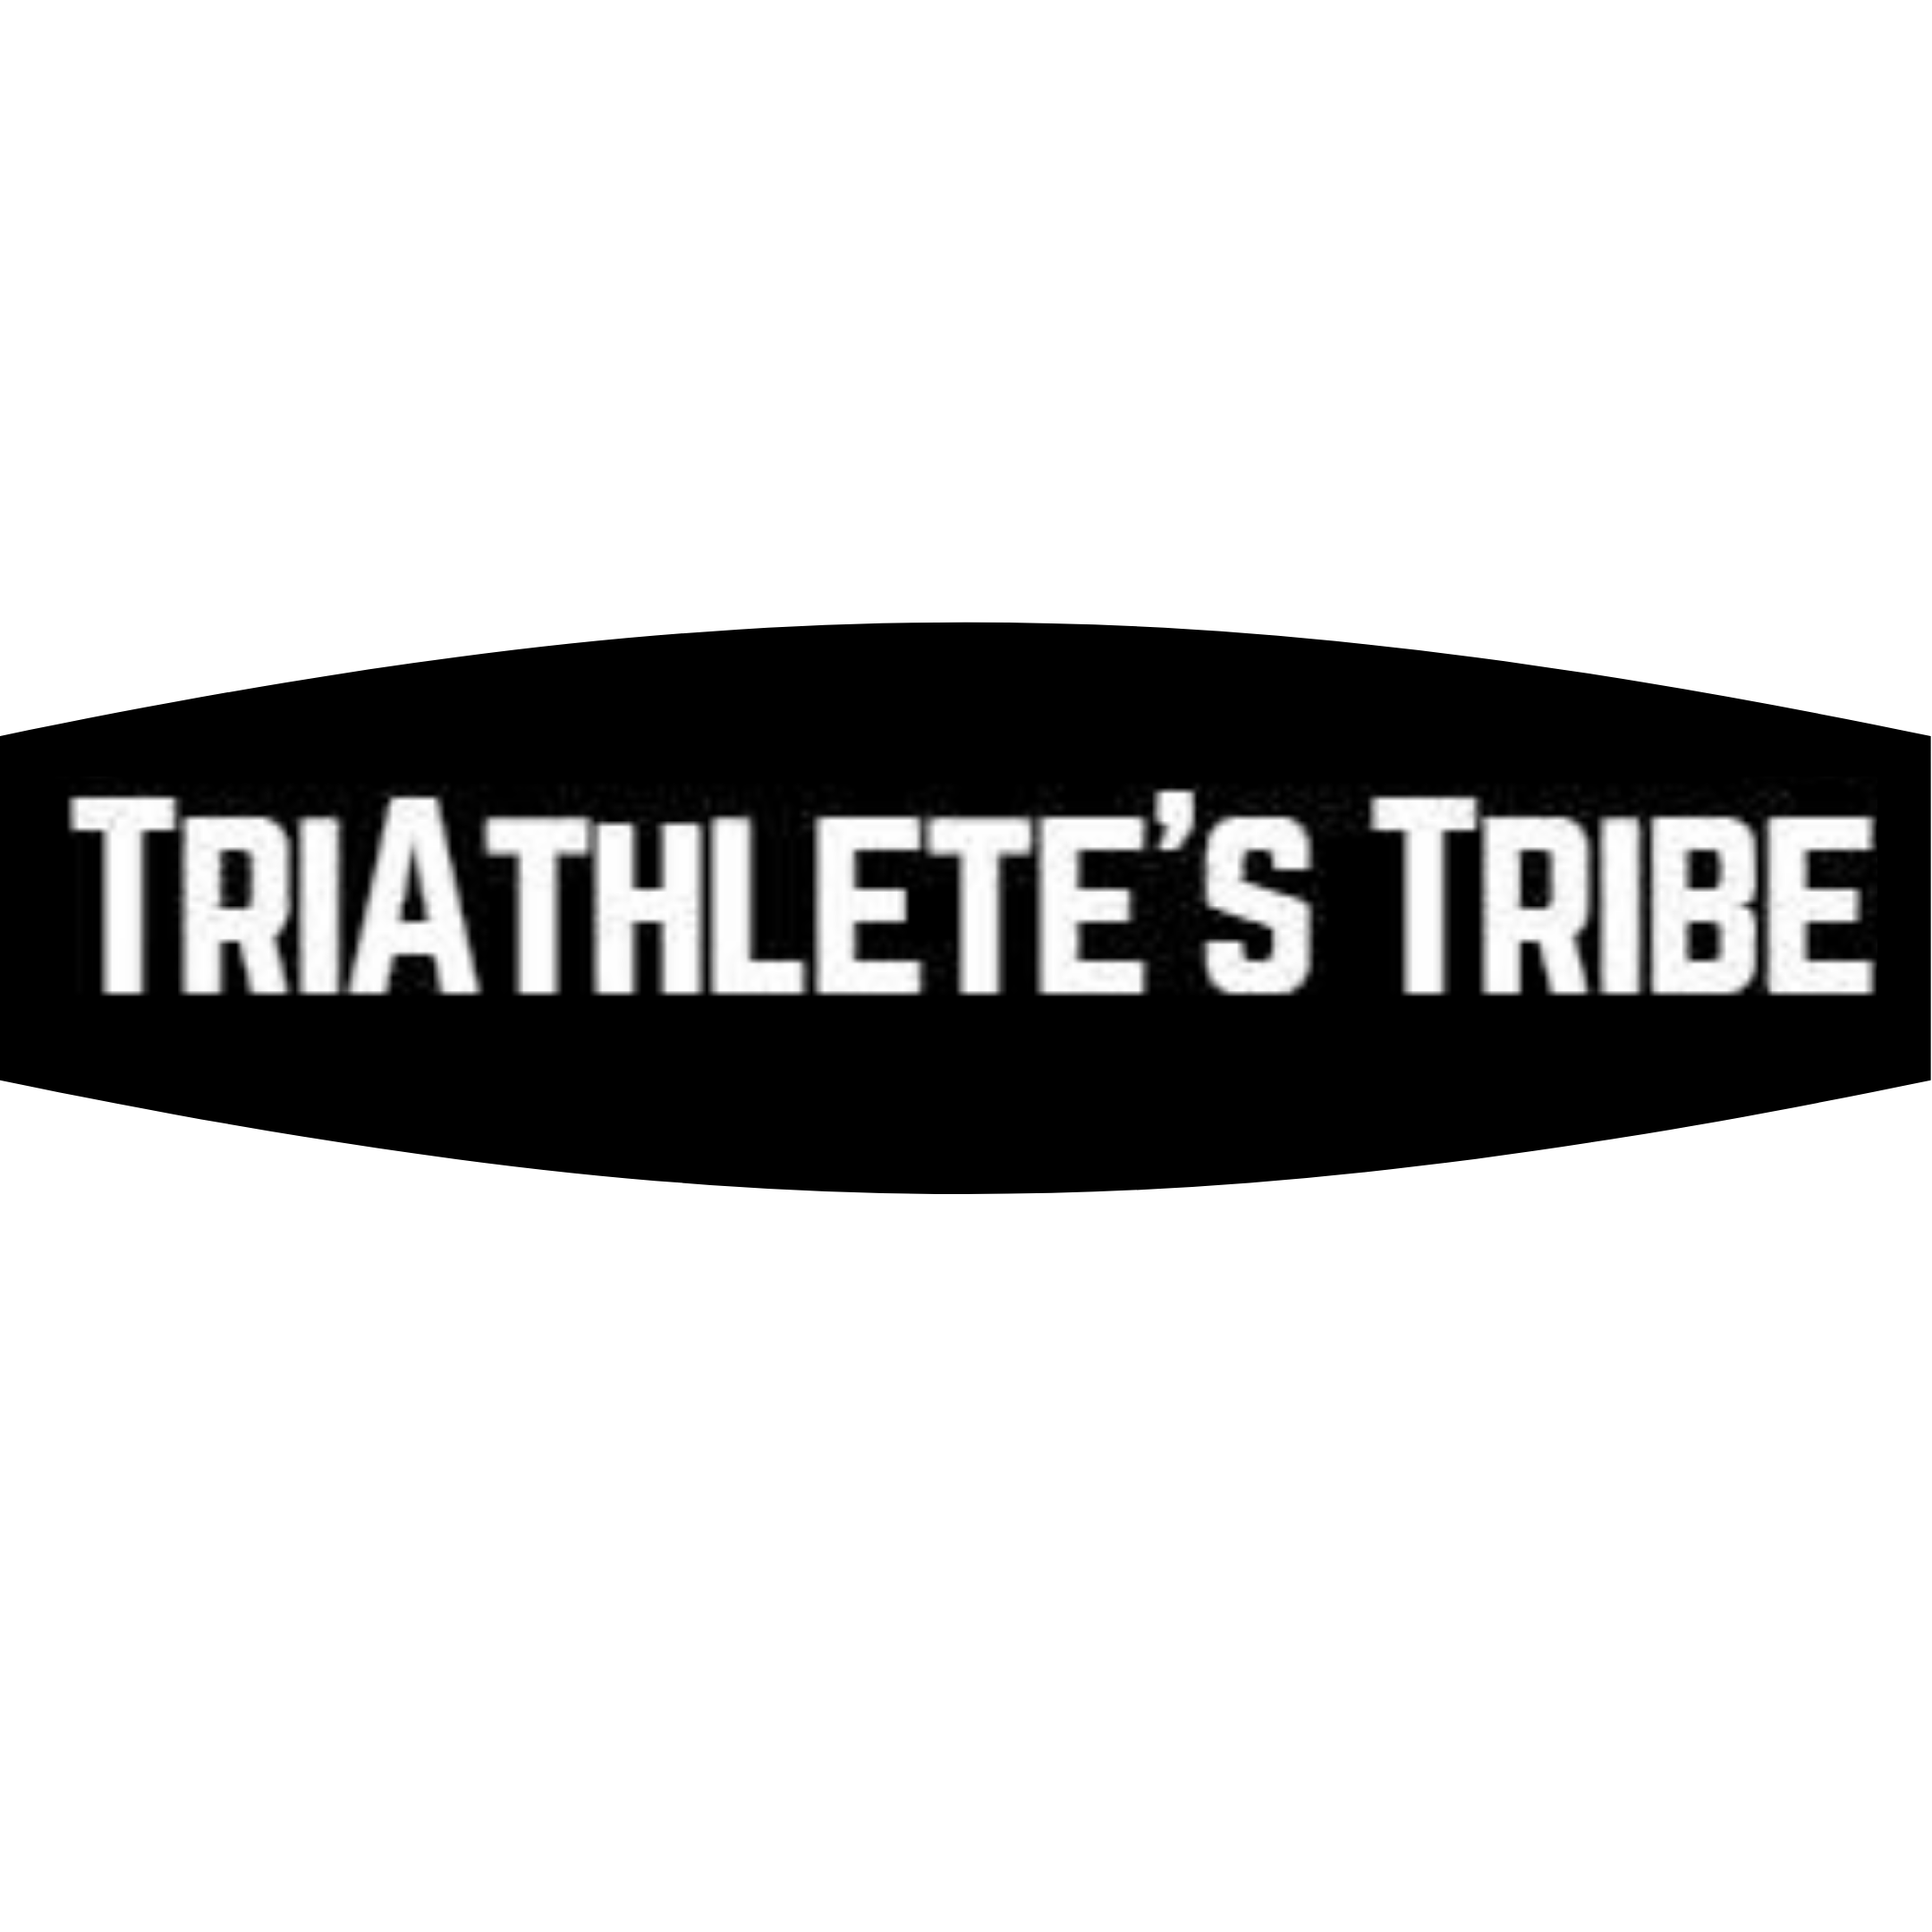 Triathlete's Tribe